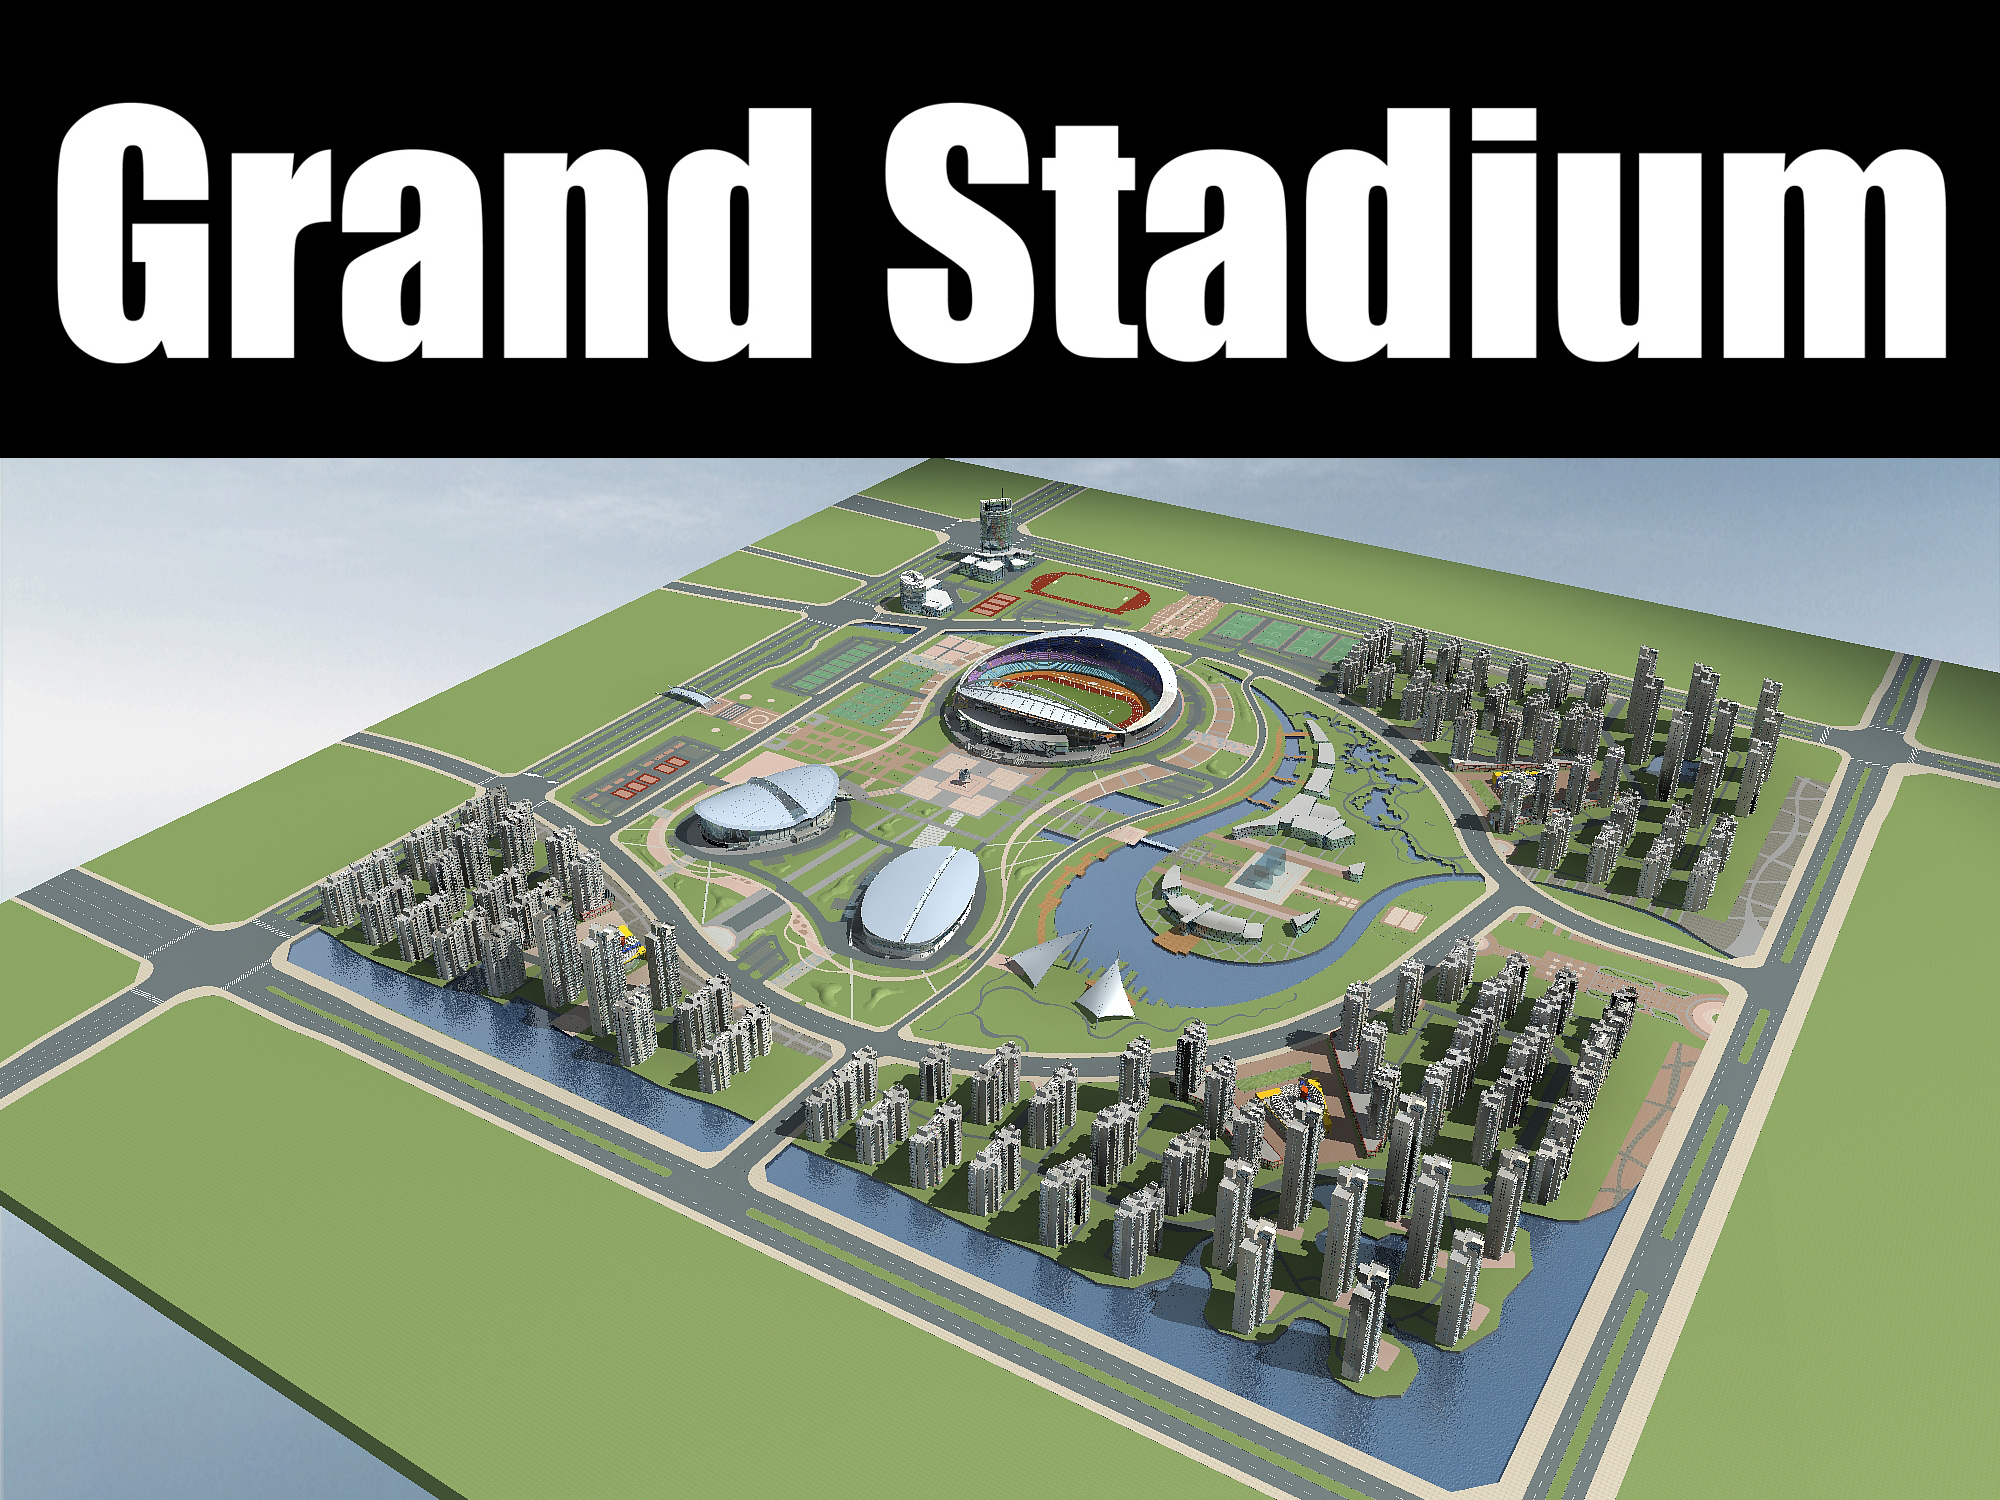 grand stadion 005 3d model 3ds max obj 98327